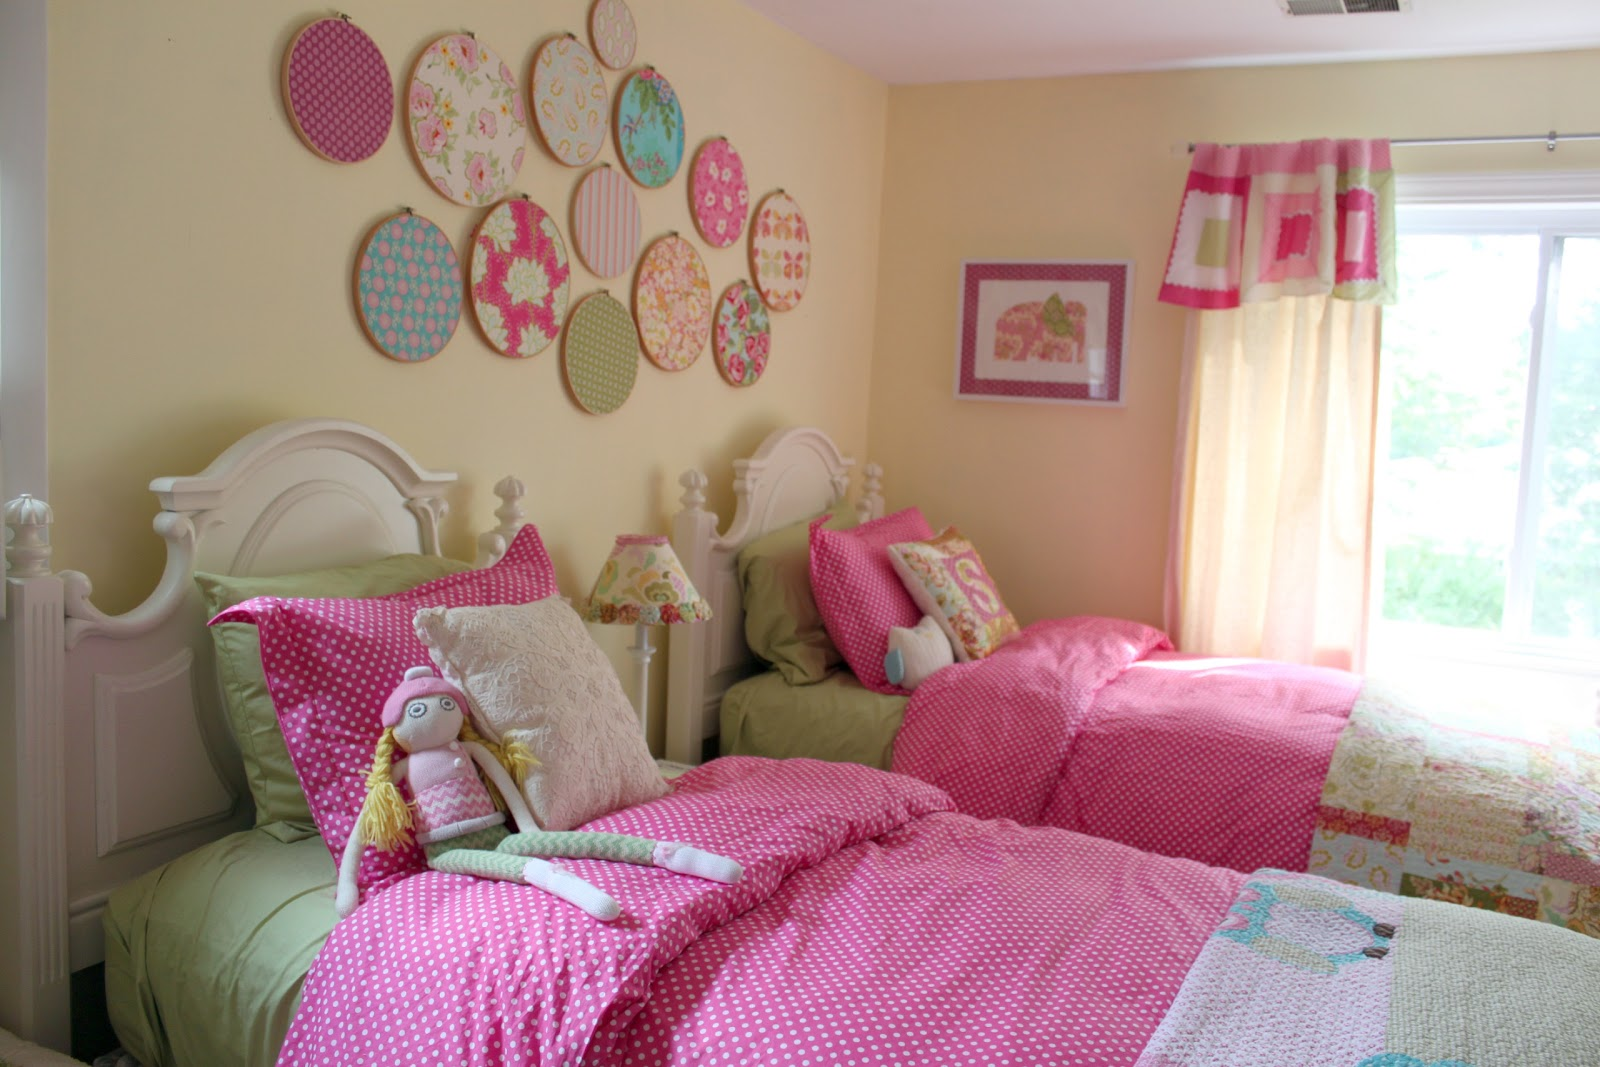 Office interior design image decorating girls shared for Bedroom designs for girls